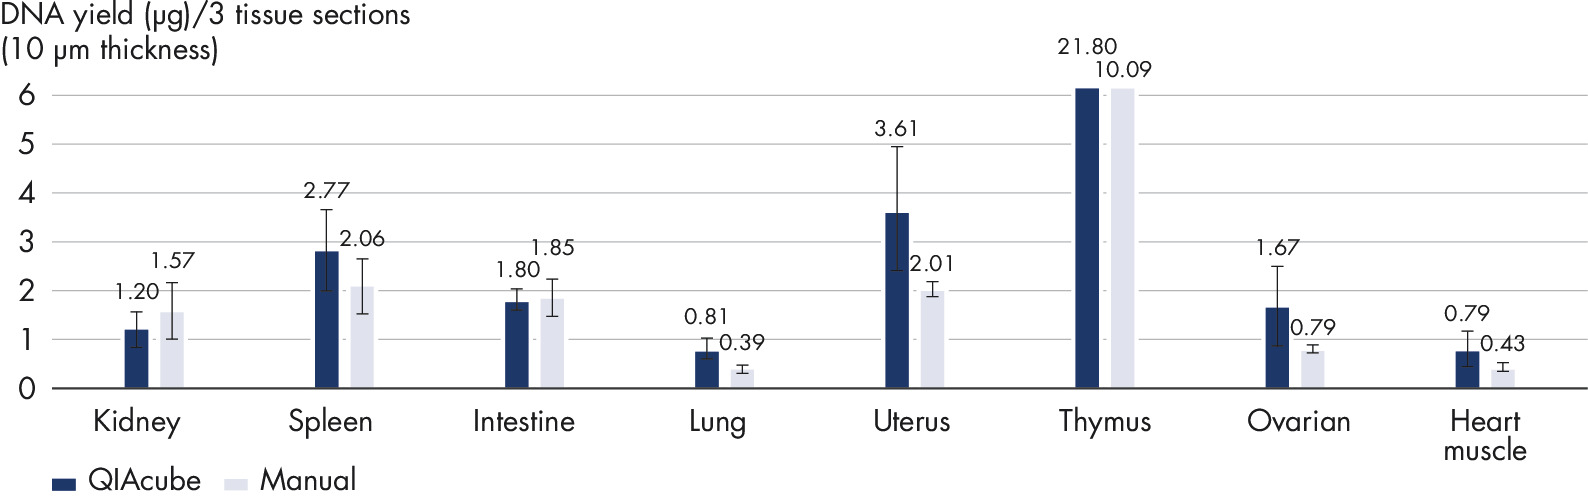 Comparison of manual and automated procedure: DNA yield from sections of PAXgene Tissue-fixed, paraffin-embedded (PFPE) tissue.